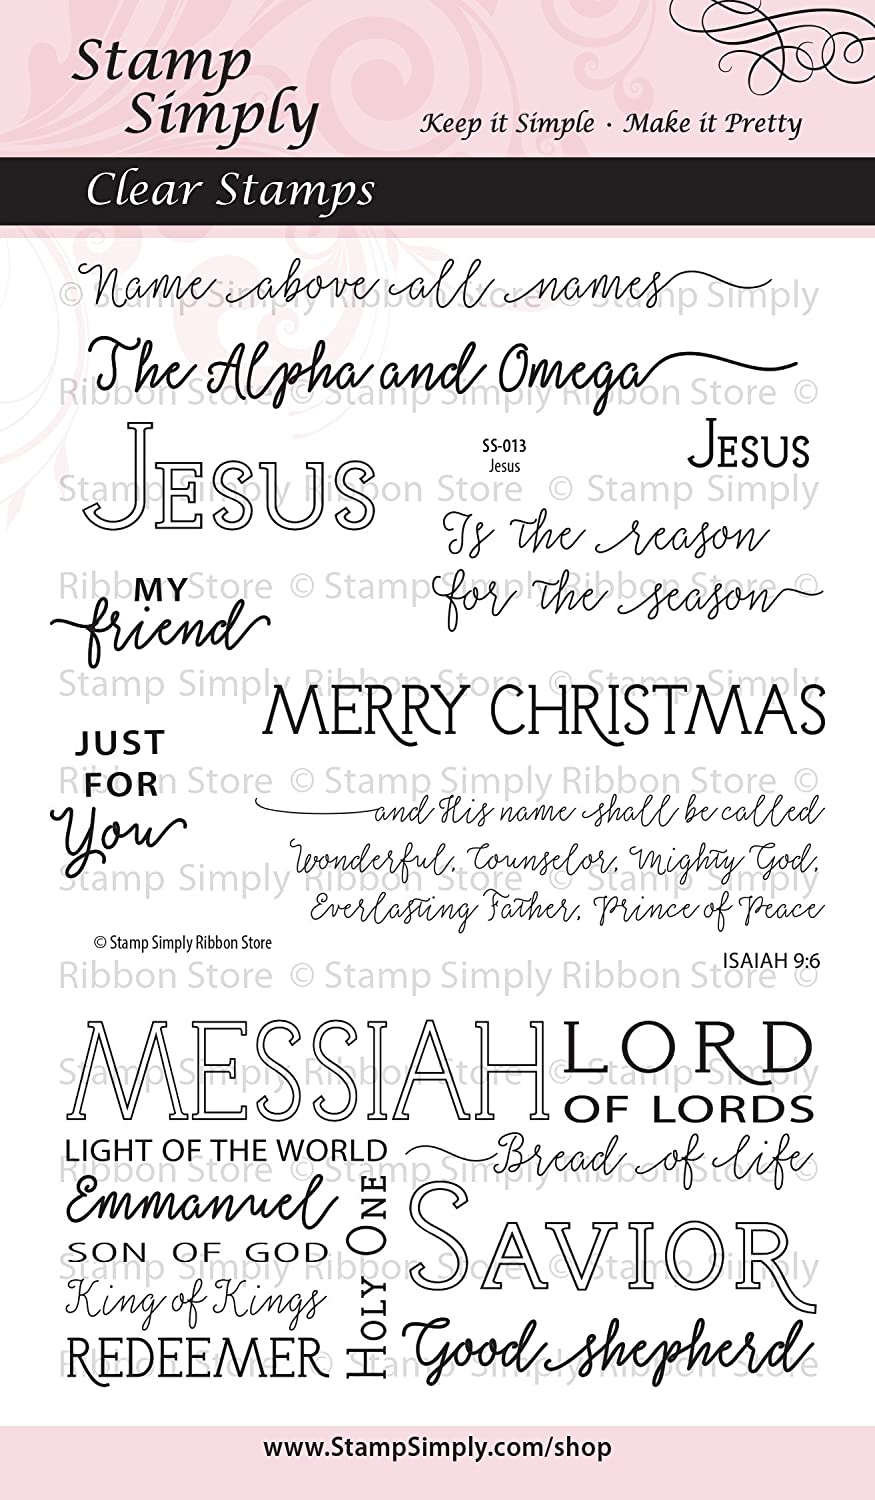 Stamp Simply Clear Stamps 1-Pack Jesus Christian Religious 10 Pieces